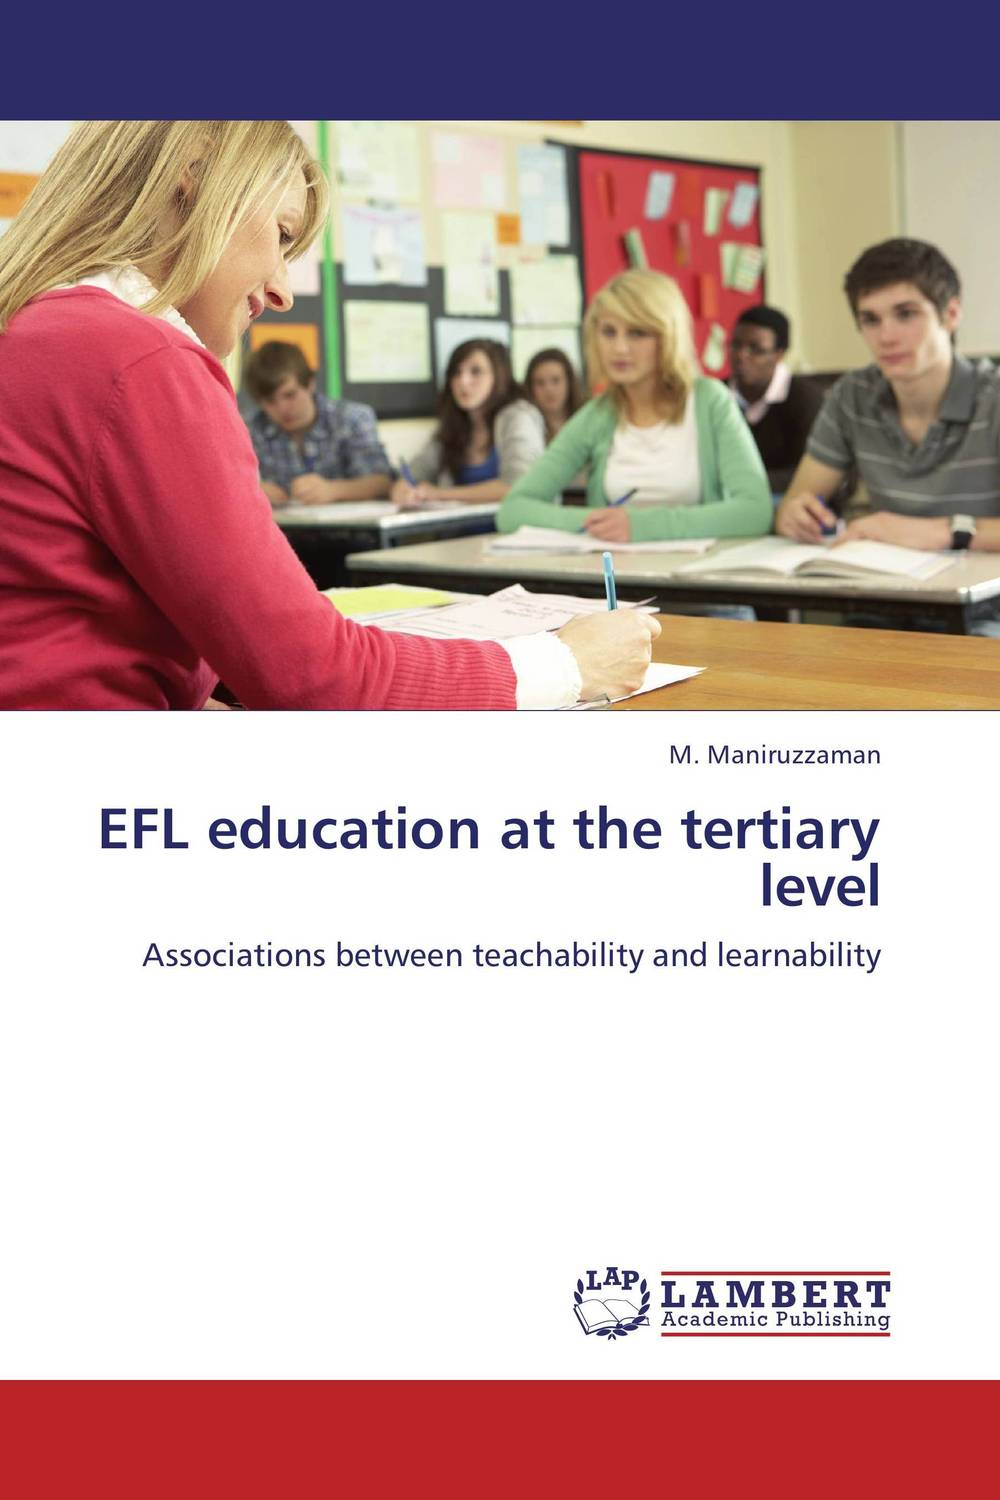 EFL education at the tertiary level